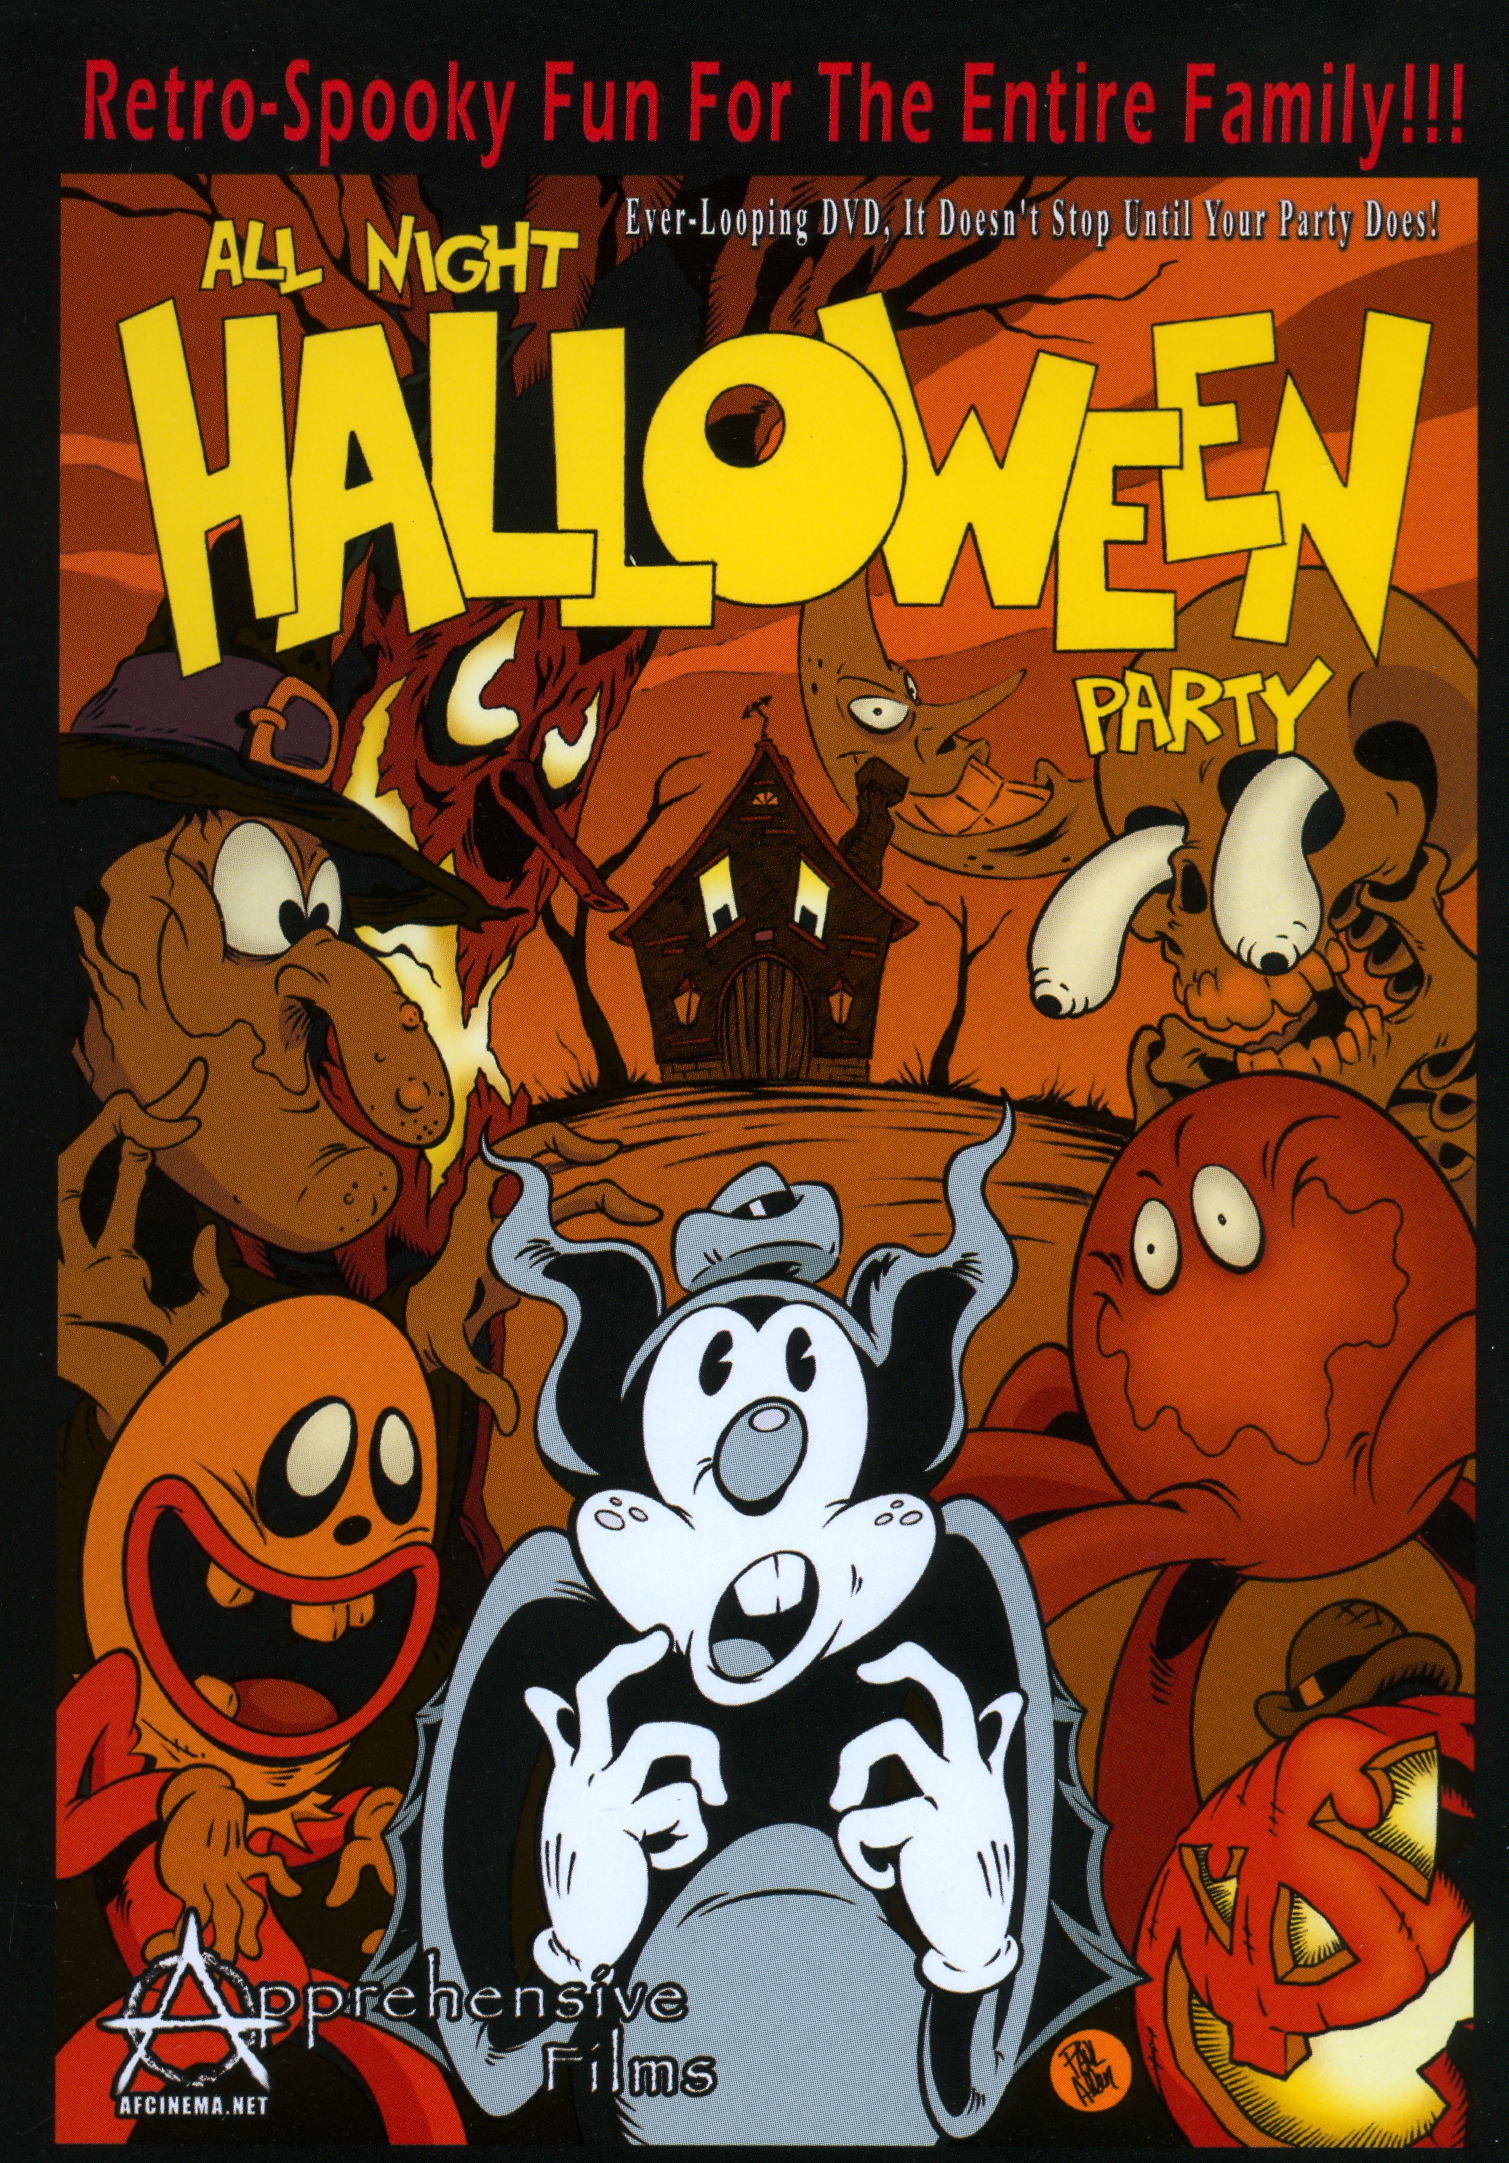 All Night Halloween Party